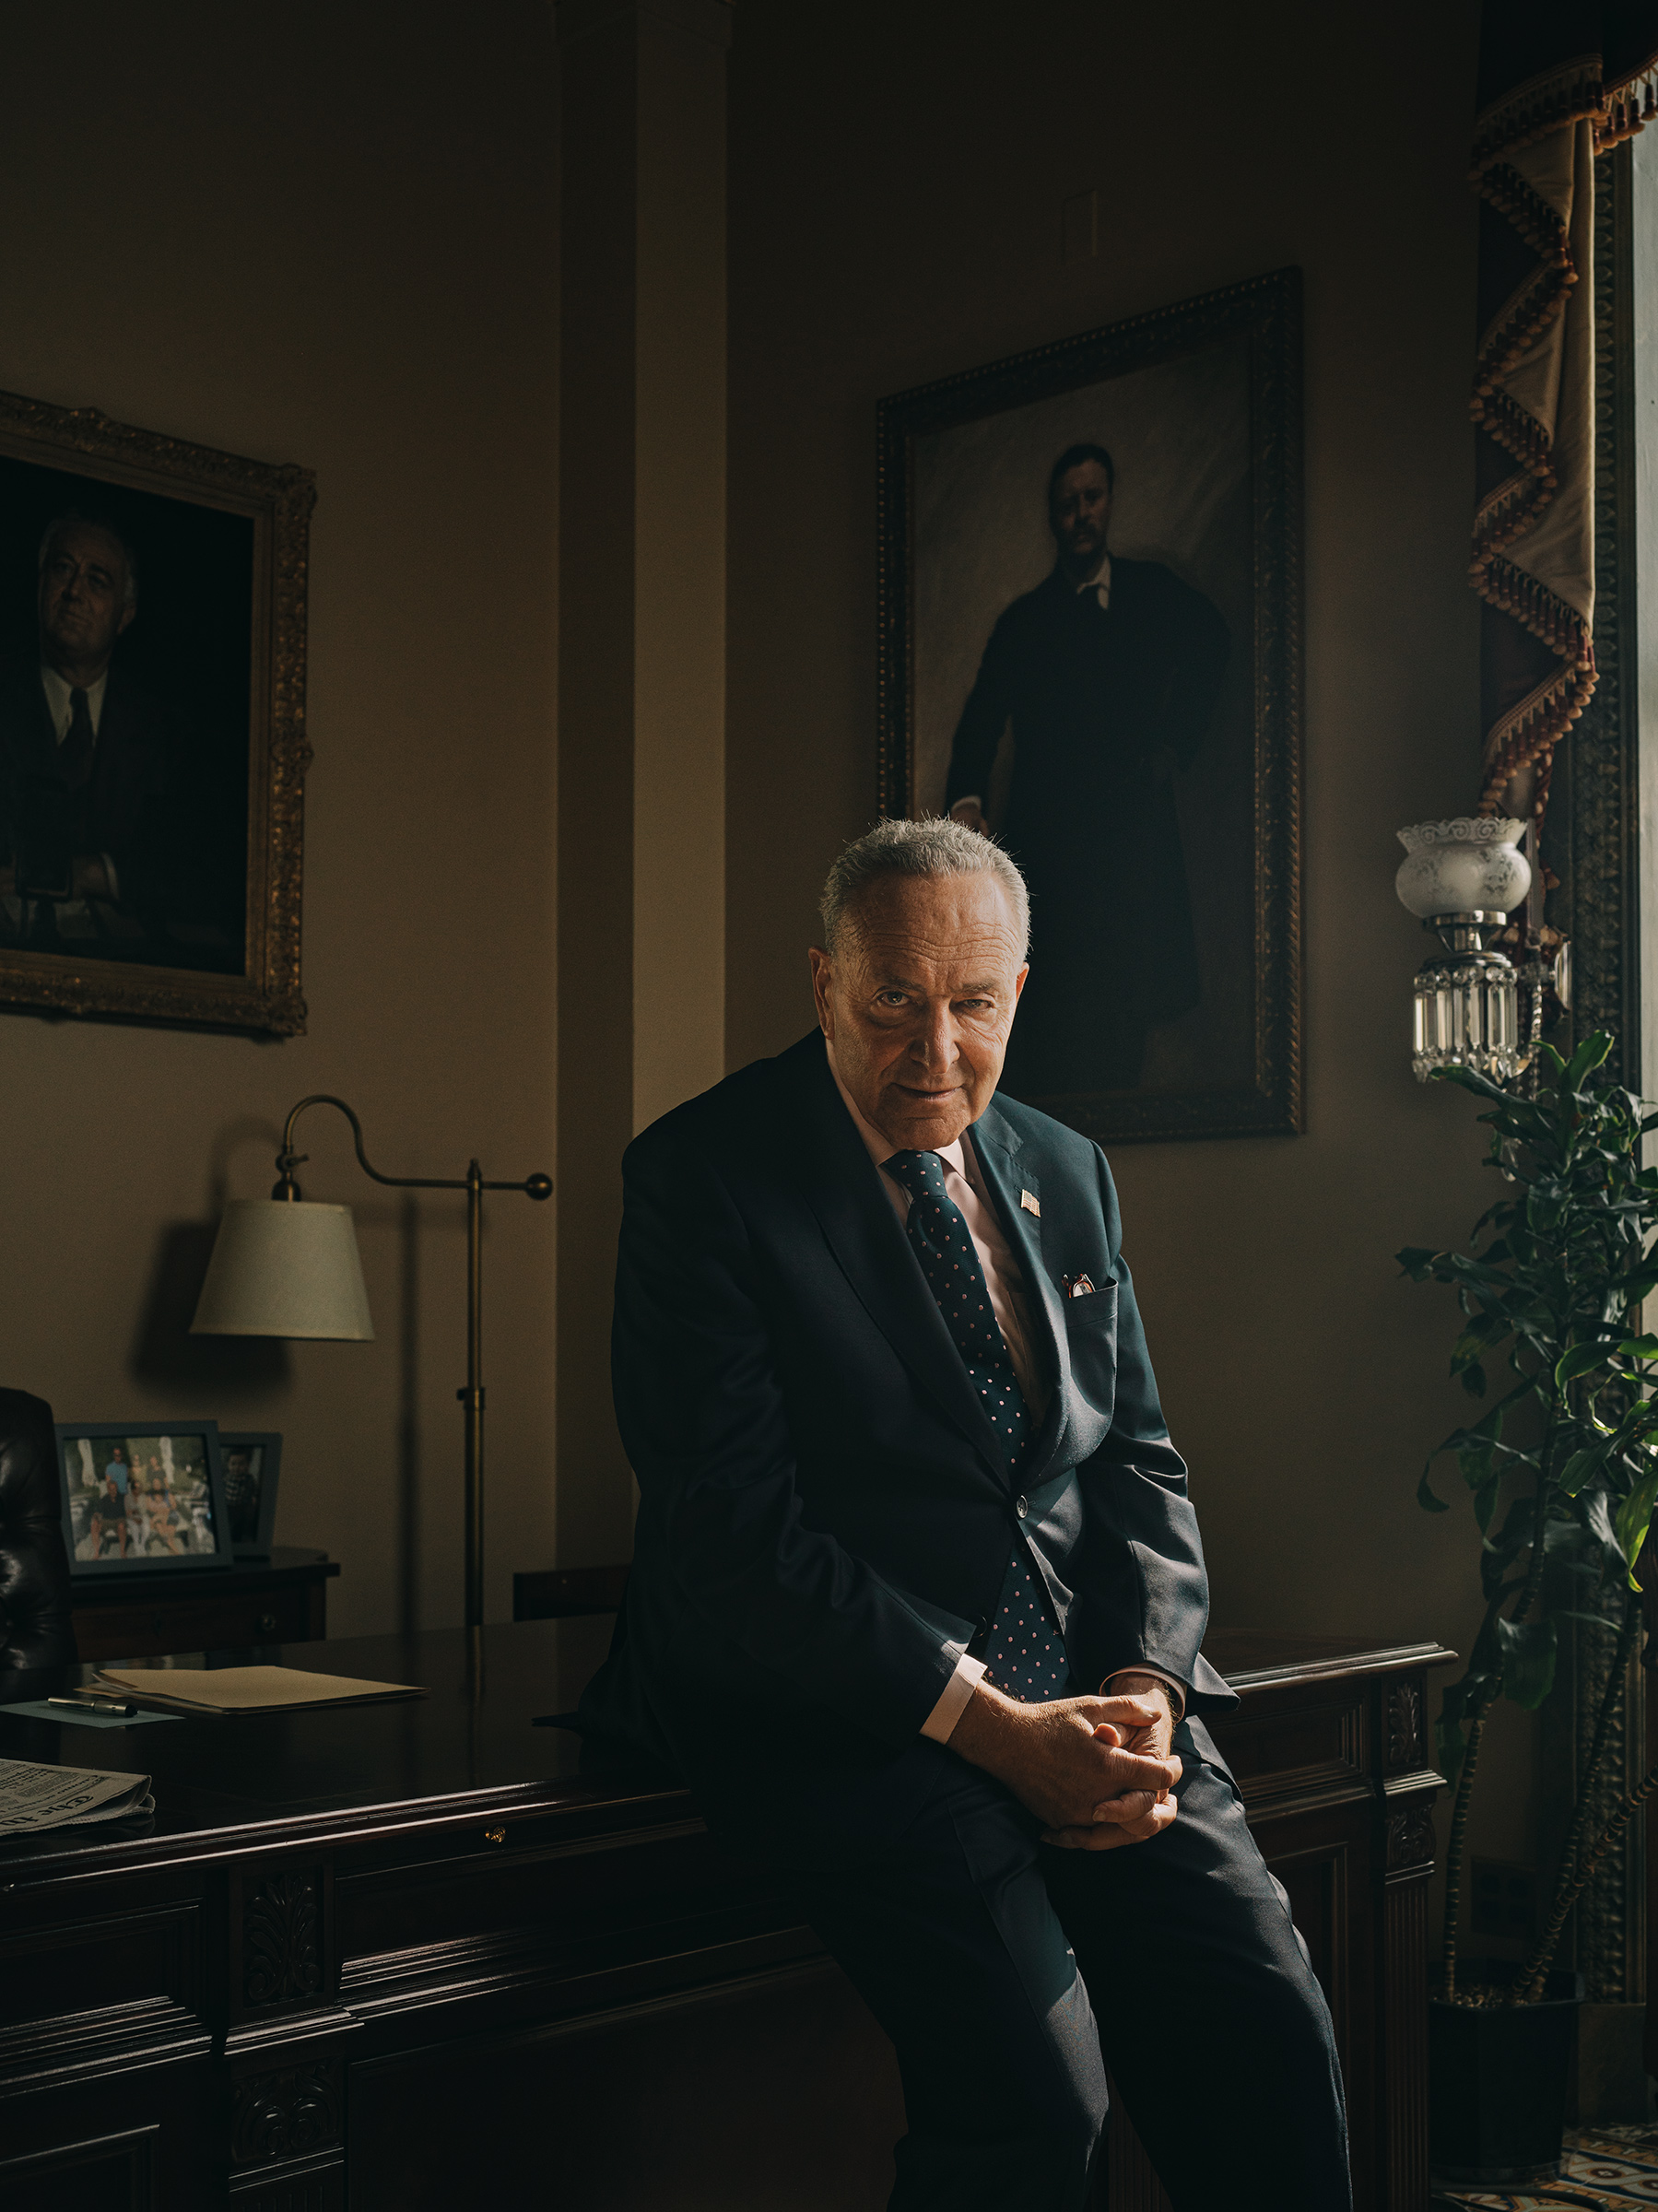 The Senate majority leader in his office at the U.S. Capitol on Aug. 4